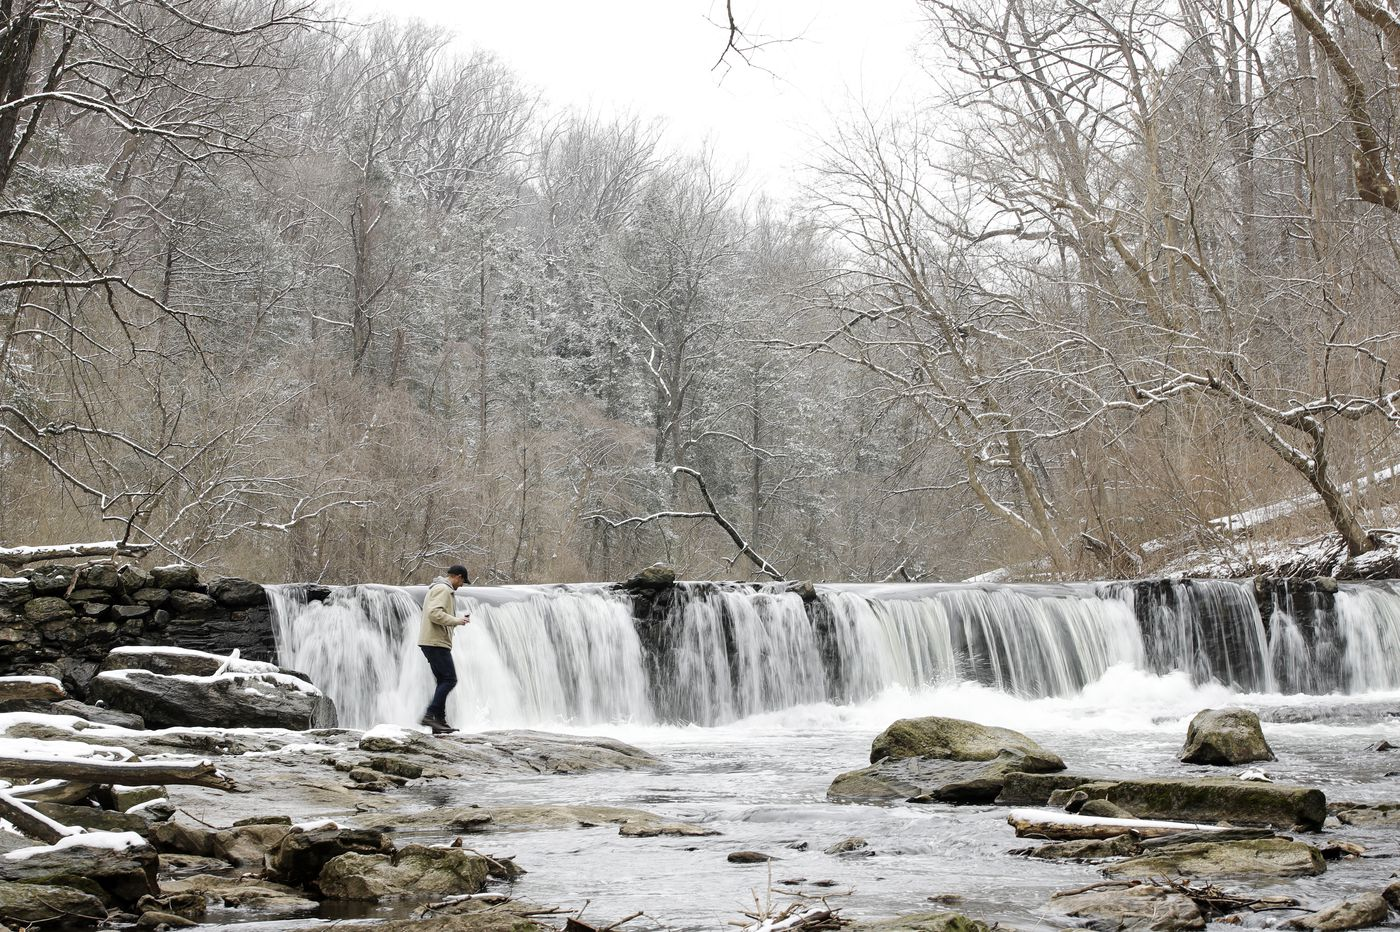 Climate change: Record rains foul Wissahickon, and its stewards are looking for help to clean it